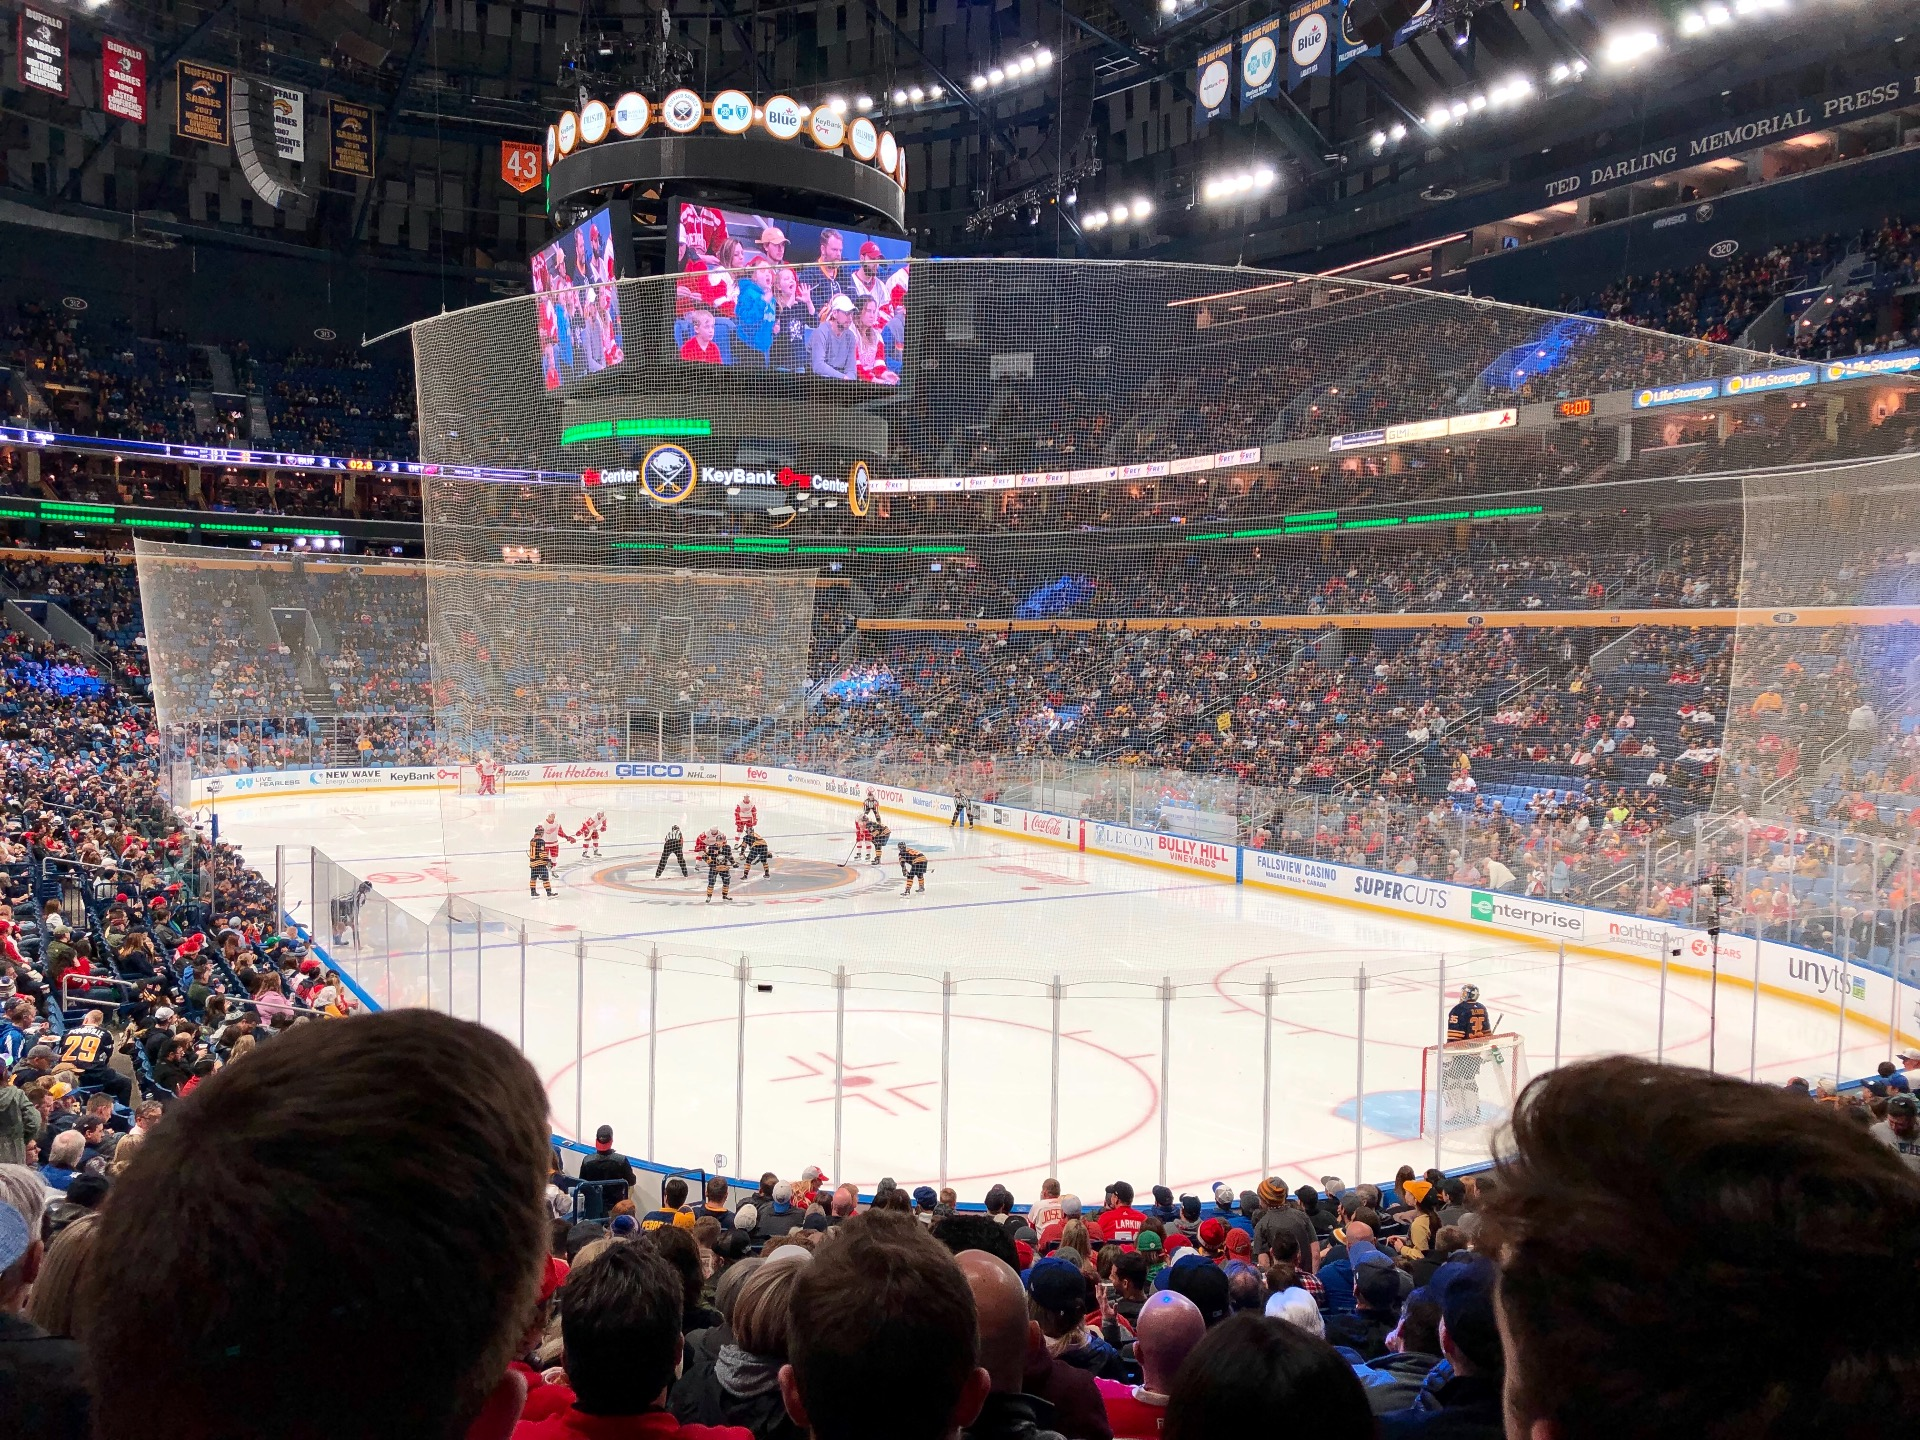 KeyBank Center Section 101 Row 19 Seat 19/20